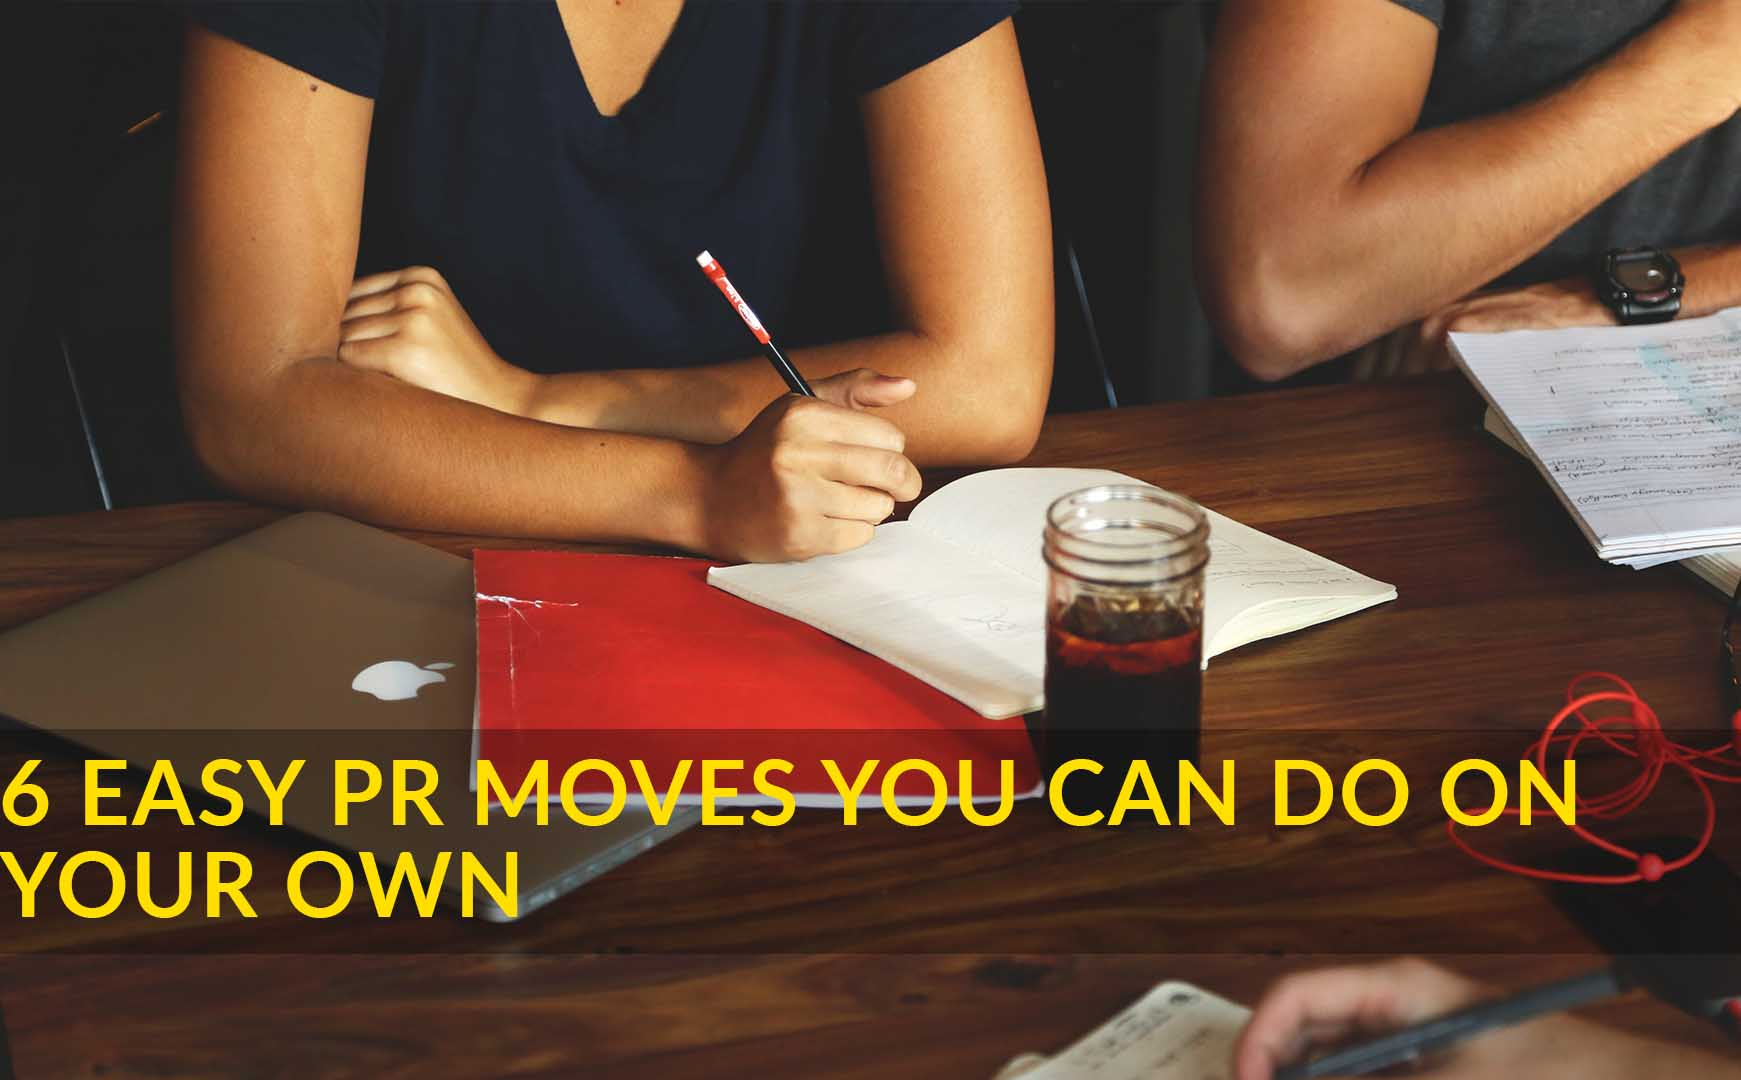 6 Easy PR Moves You Can Do On Your Own